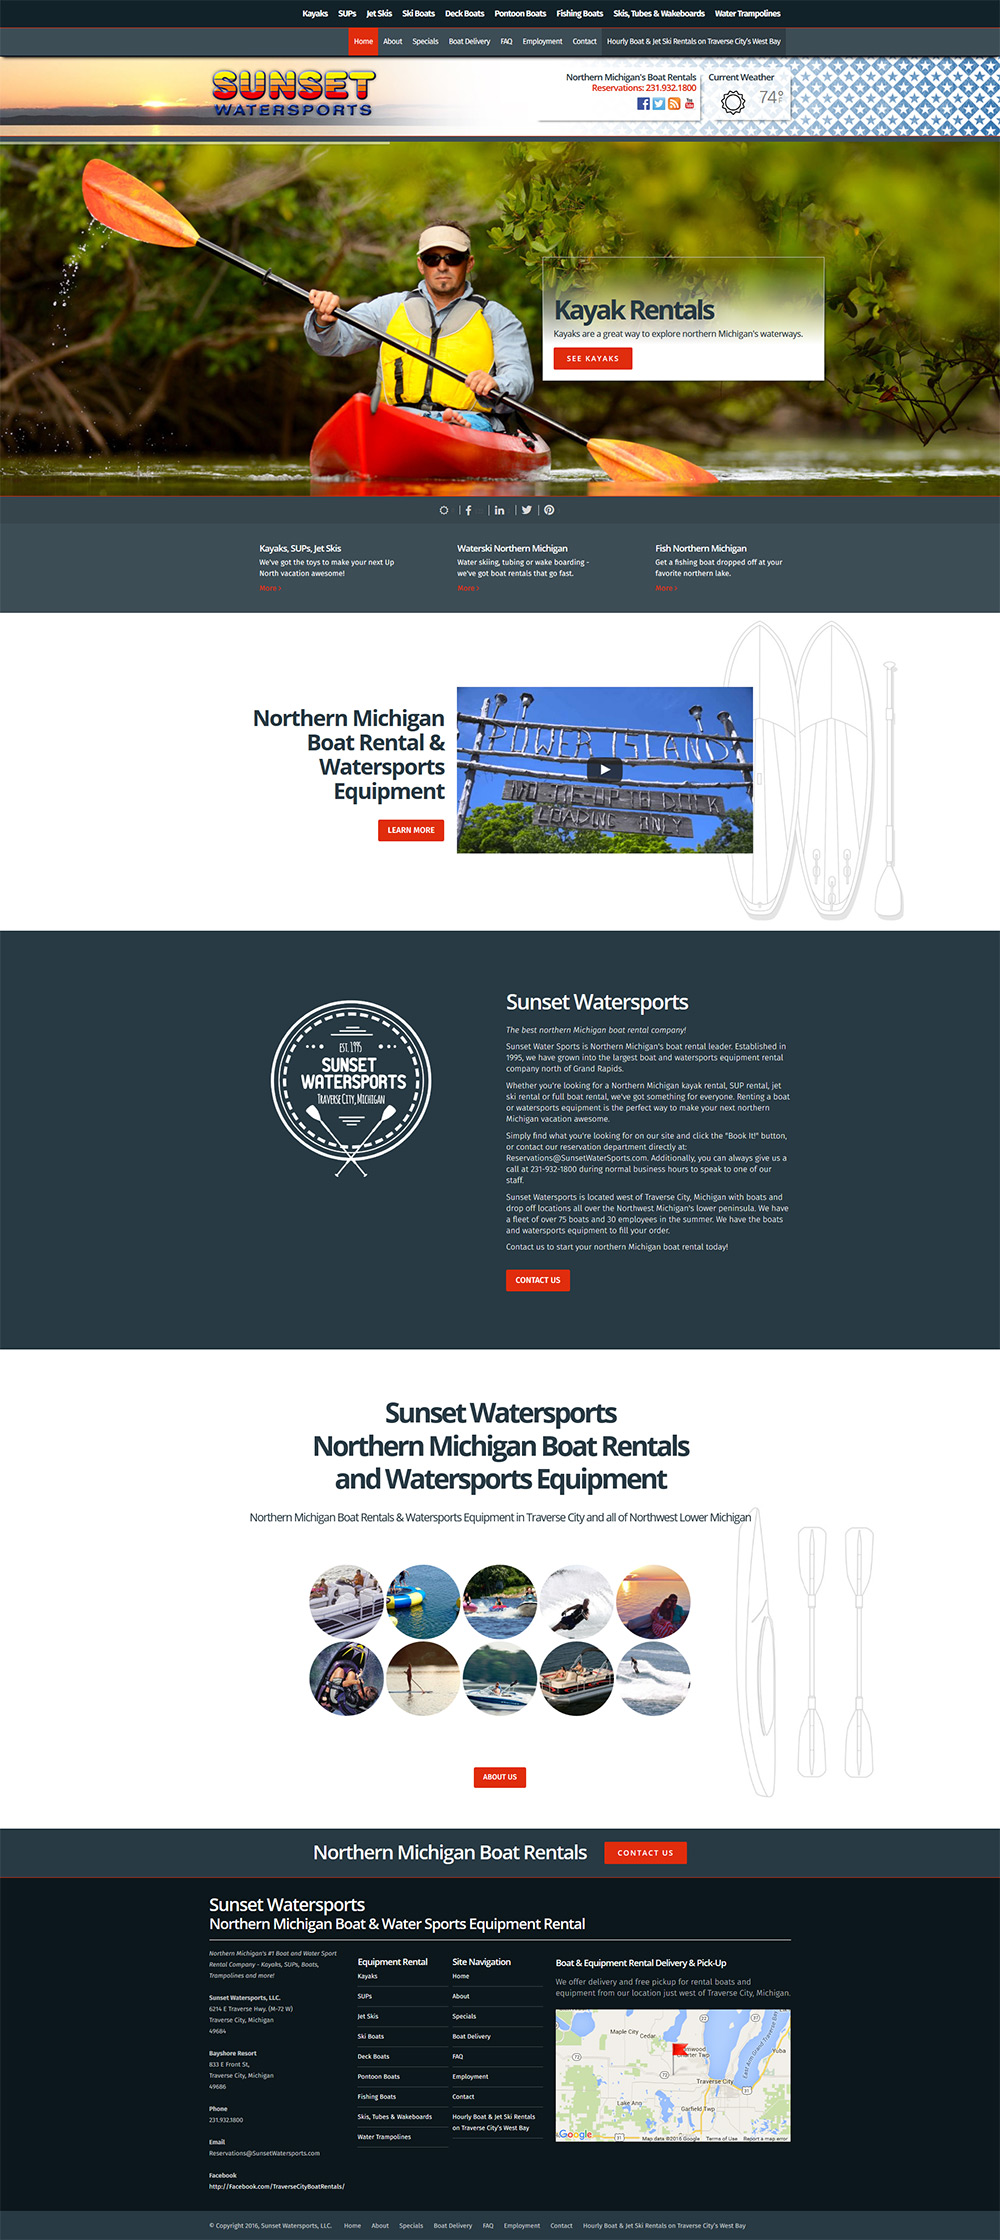 Northern Michigan Web Design - Sunset Watersport by Traverse City Web Design, LLC.